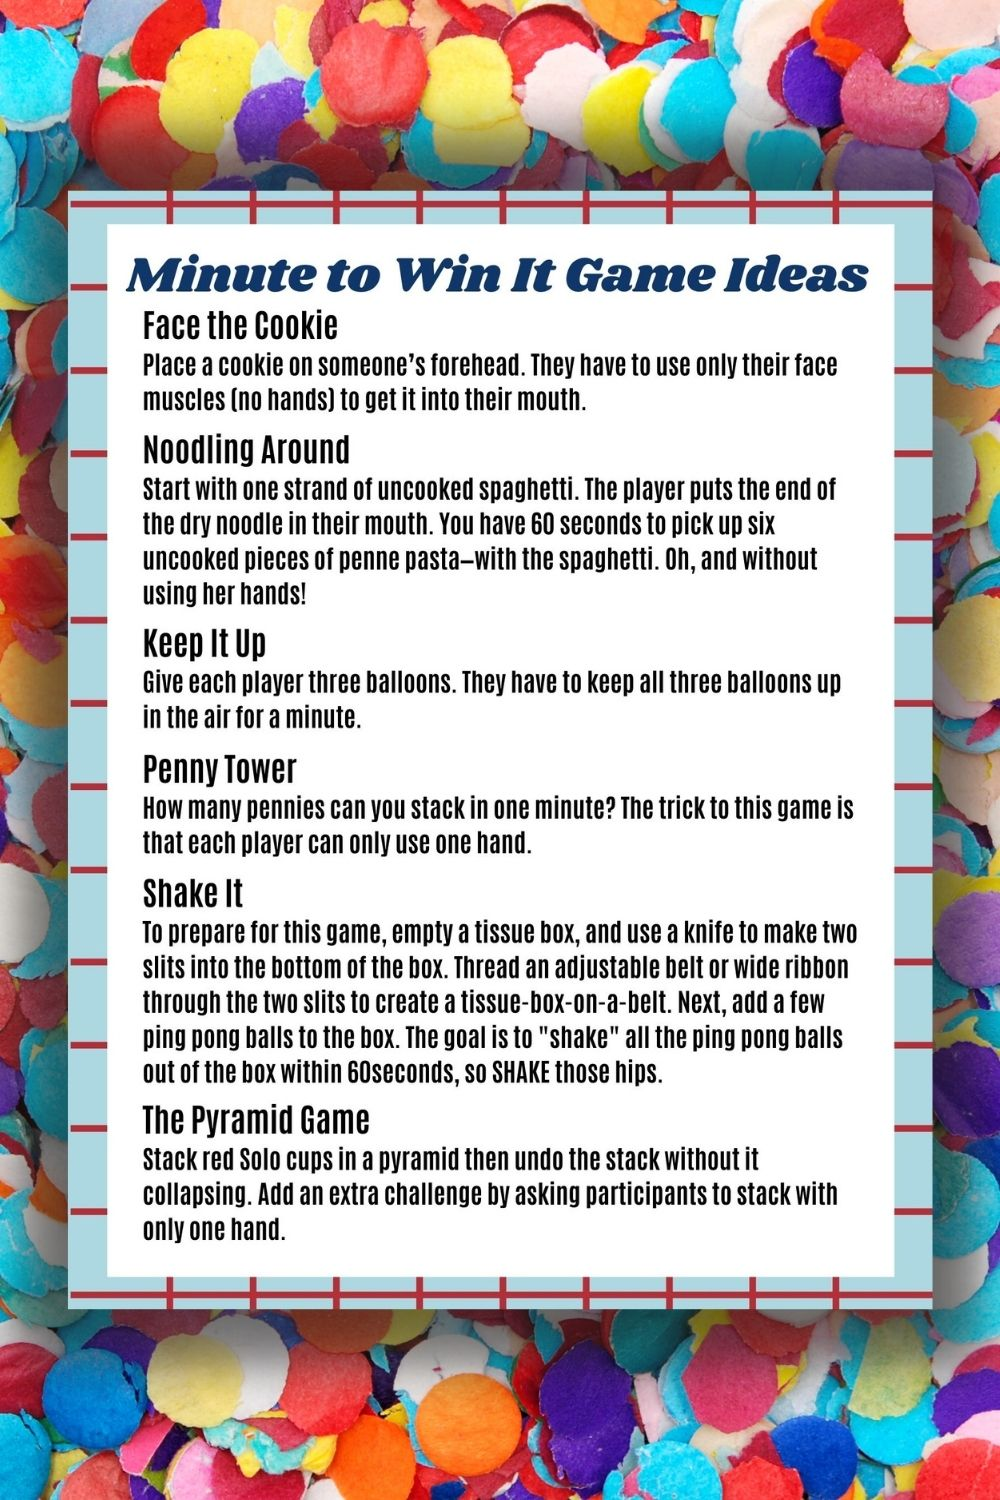 Minute to Win It Game Ideas PDF List